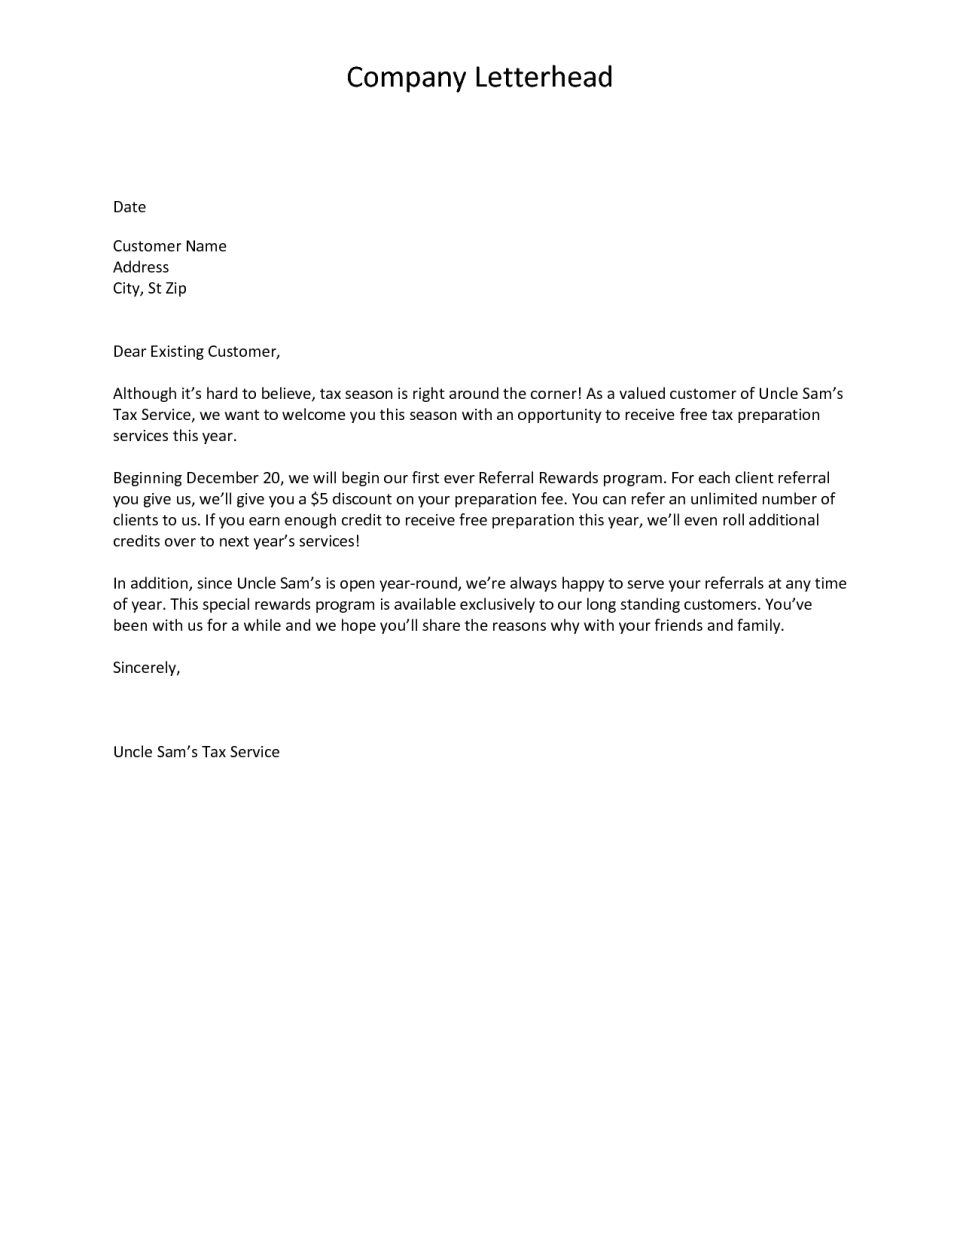 Real Estate Offer Letter Template Free - Real Estate Fer Letter Template Free Pdf format